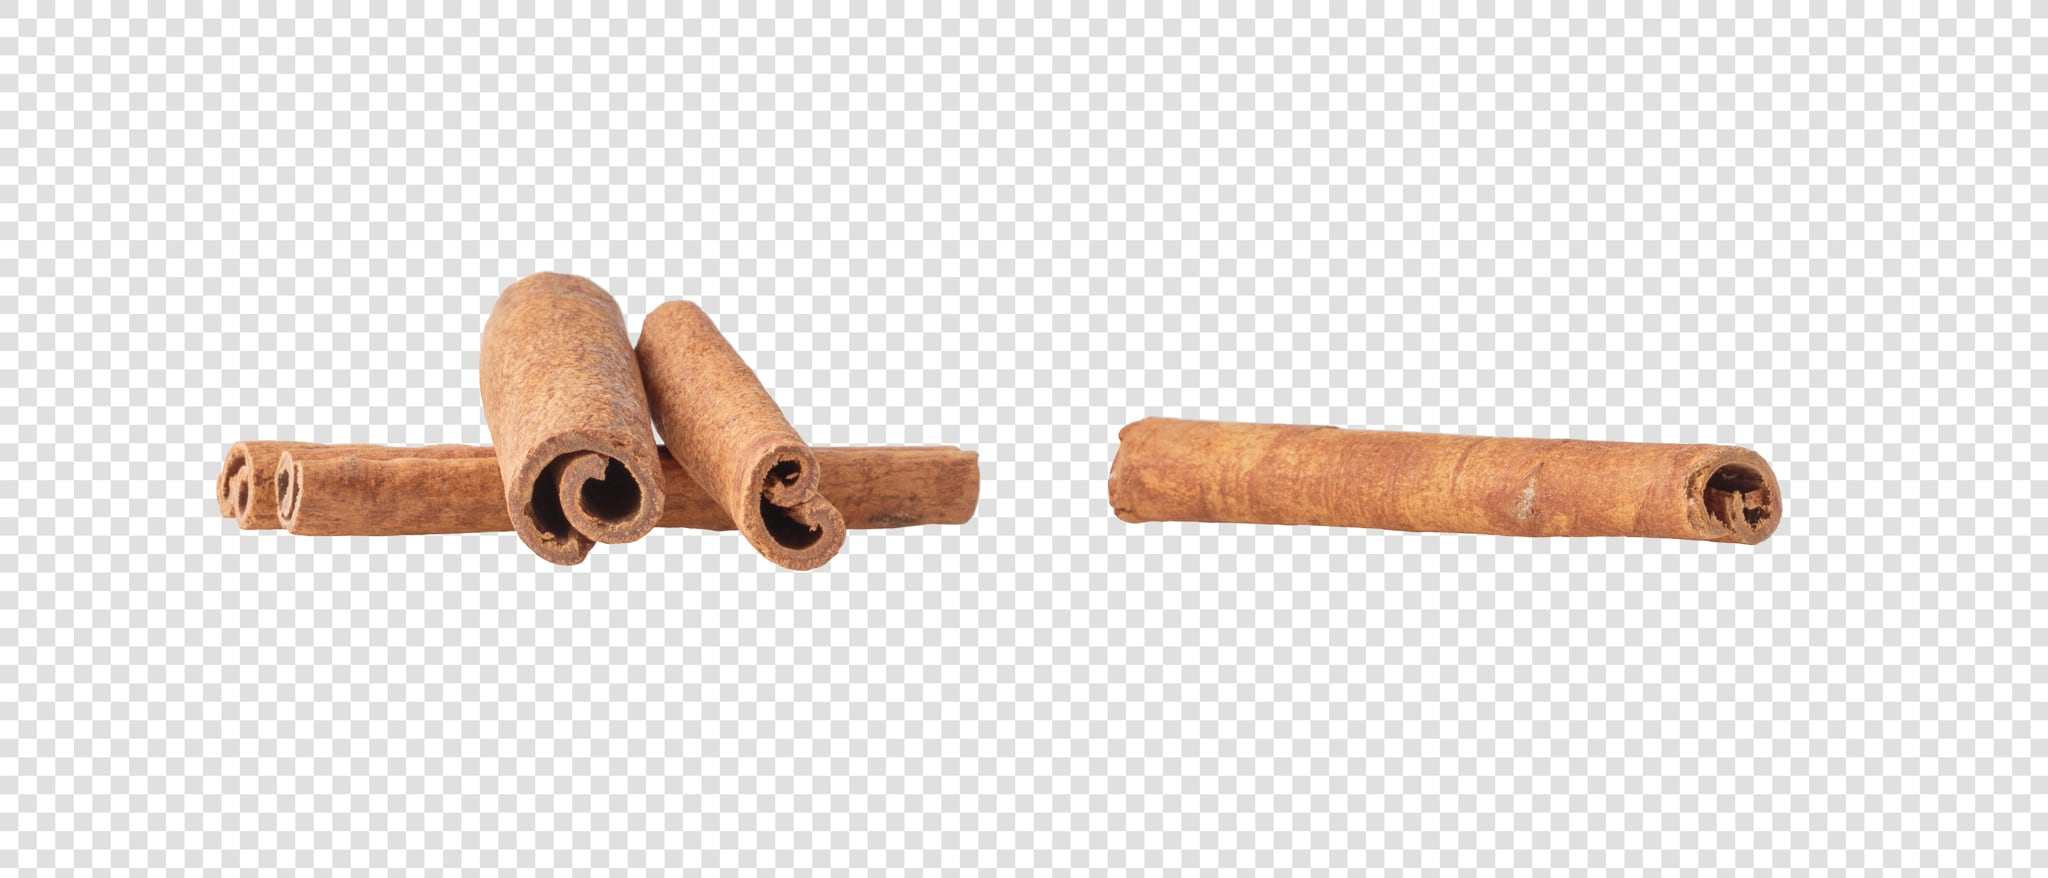 Cinnamon image asset with transparent background